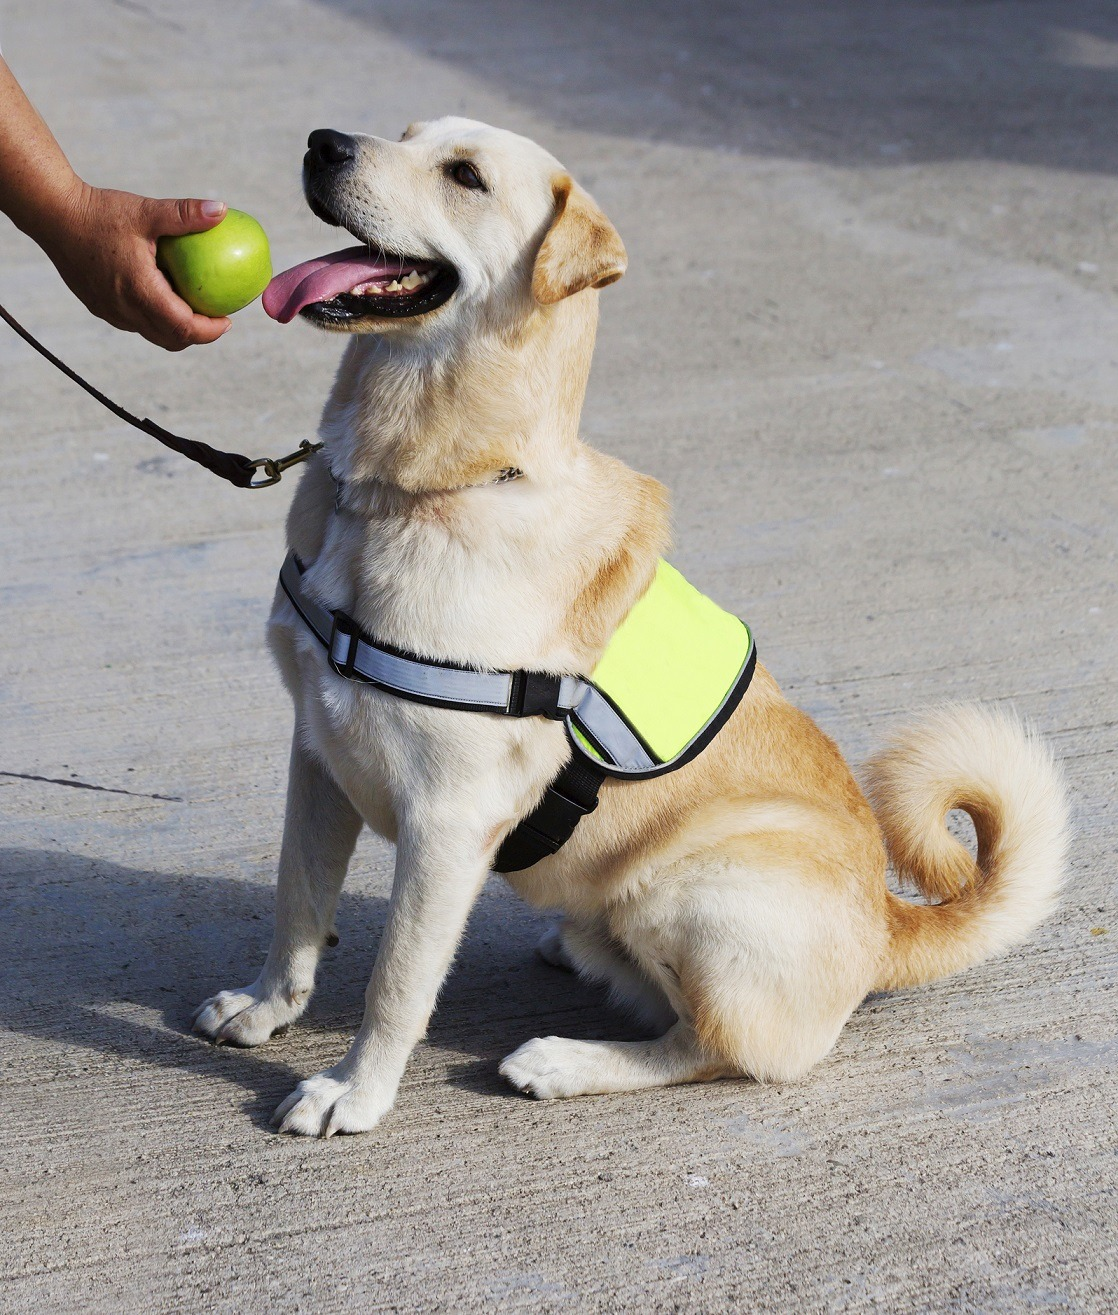 Service Dog Sitting with ball